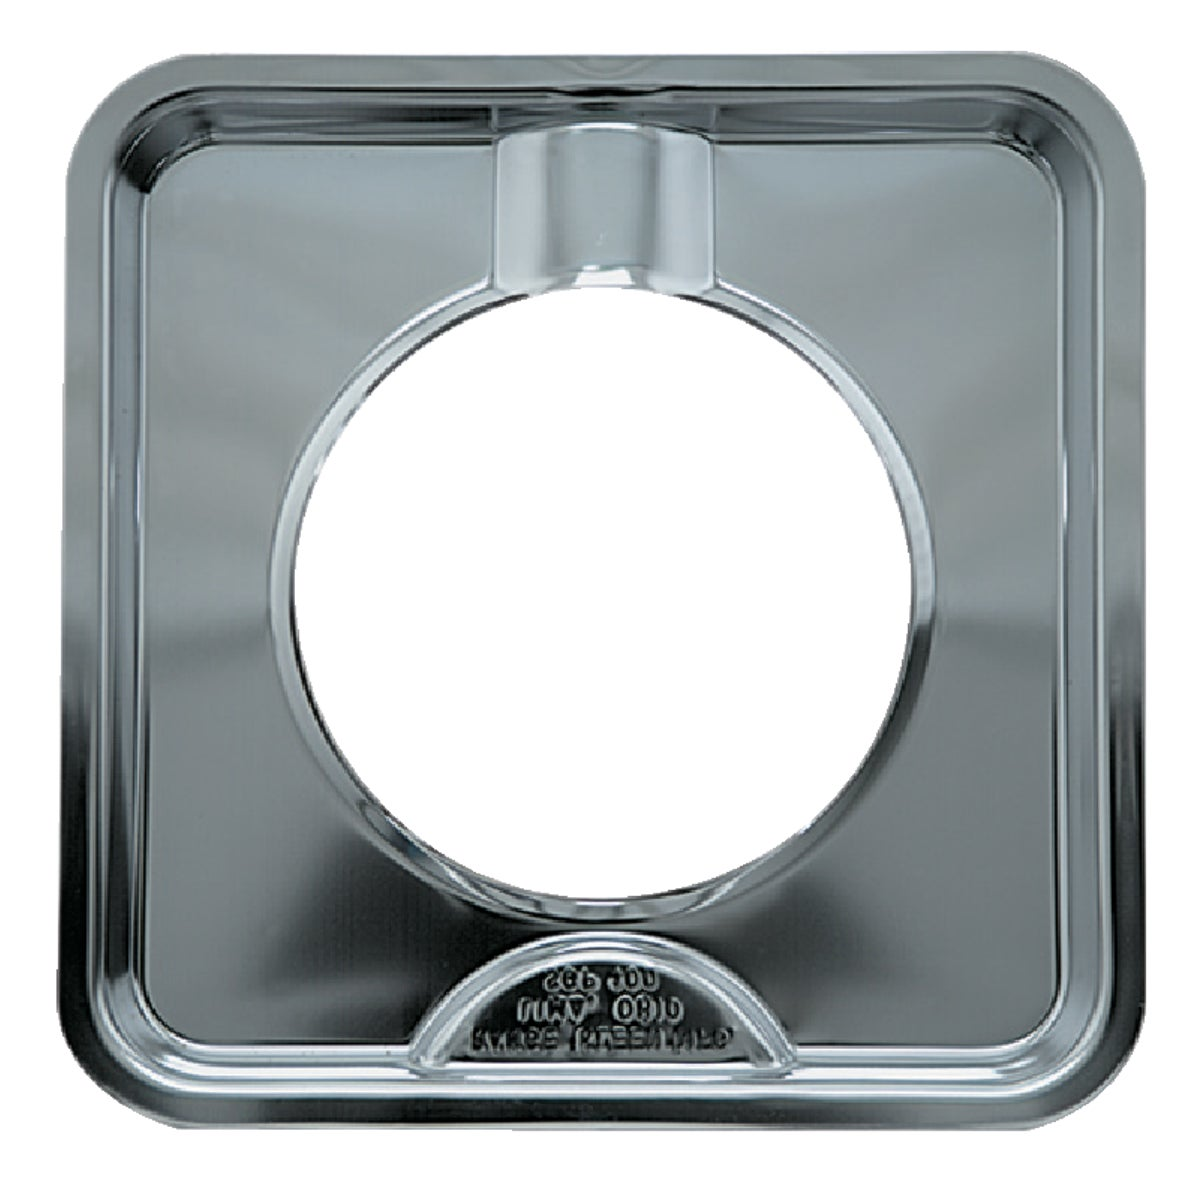 SQUARE GAS PAN - SGP-400 by Range Kleen Mfg Inc